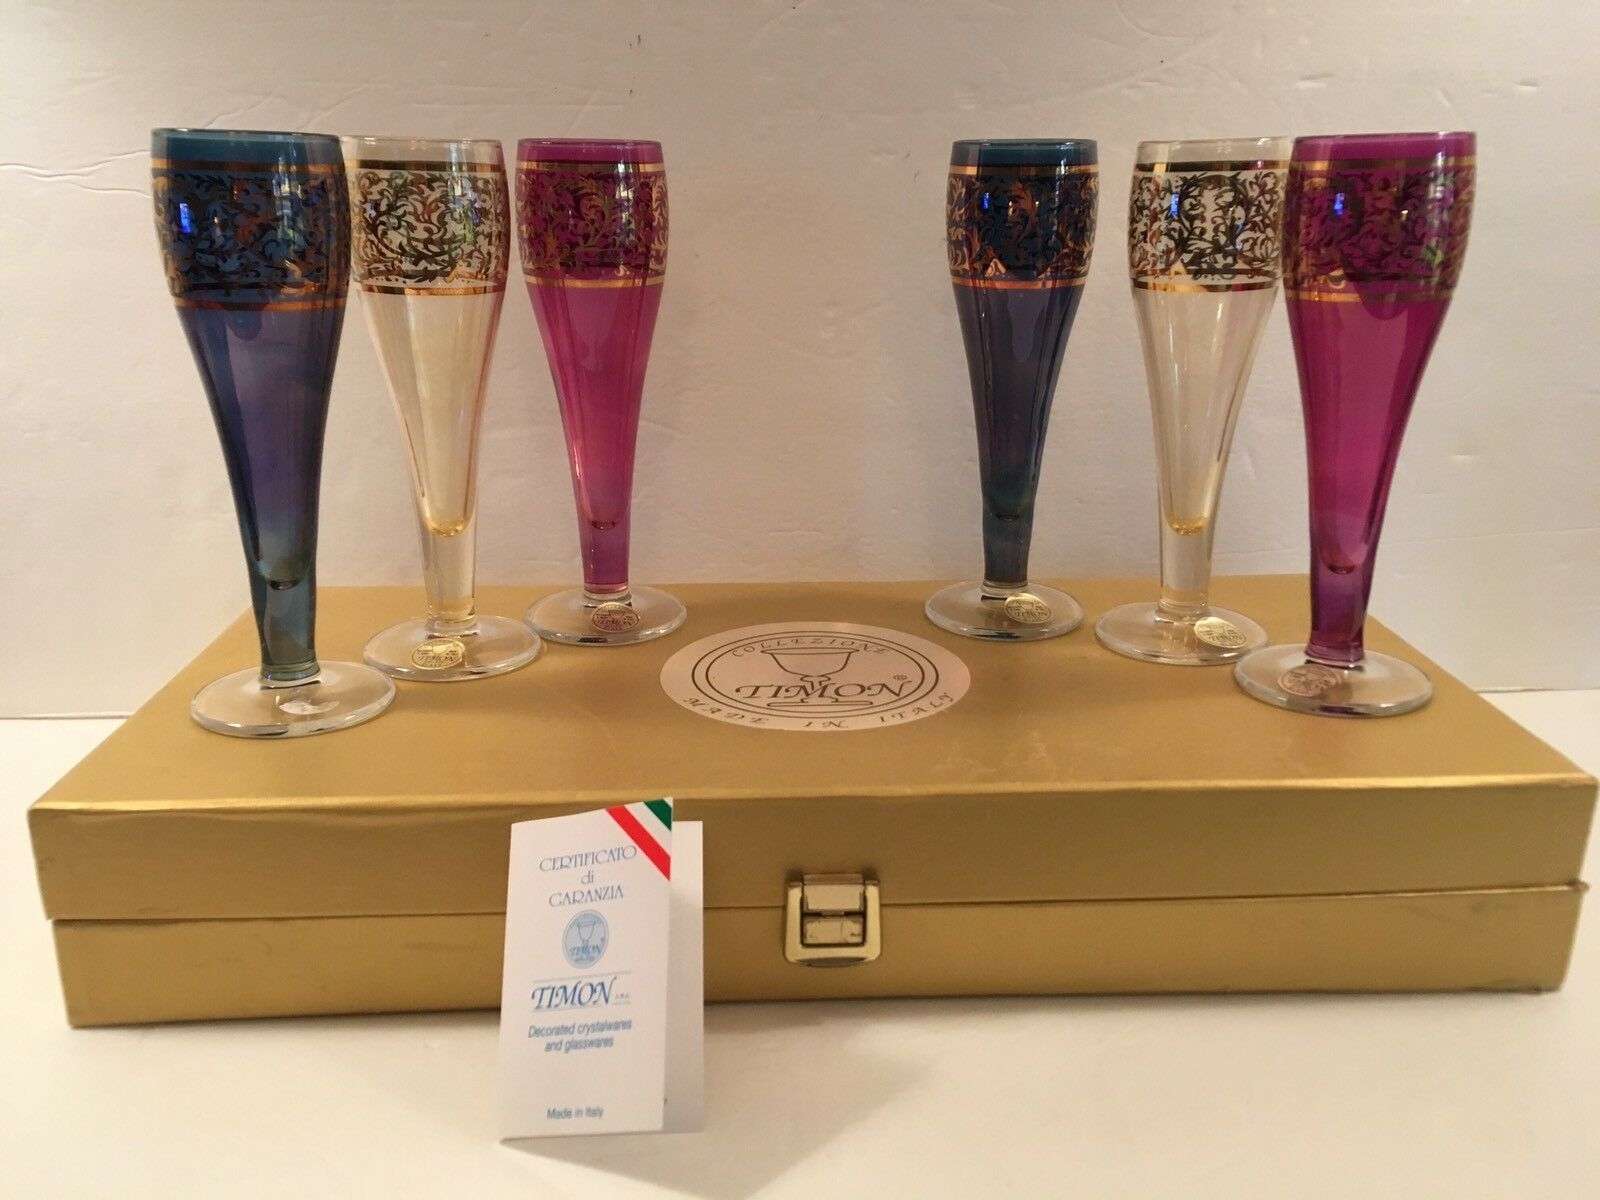 Timon Sherry Glasses Italian 8 Ounce Farbe Decor by Hand 24k Gold Accented COA